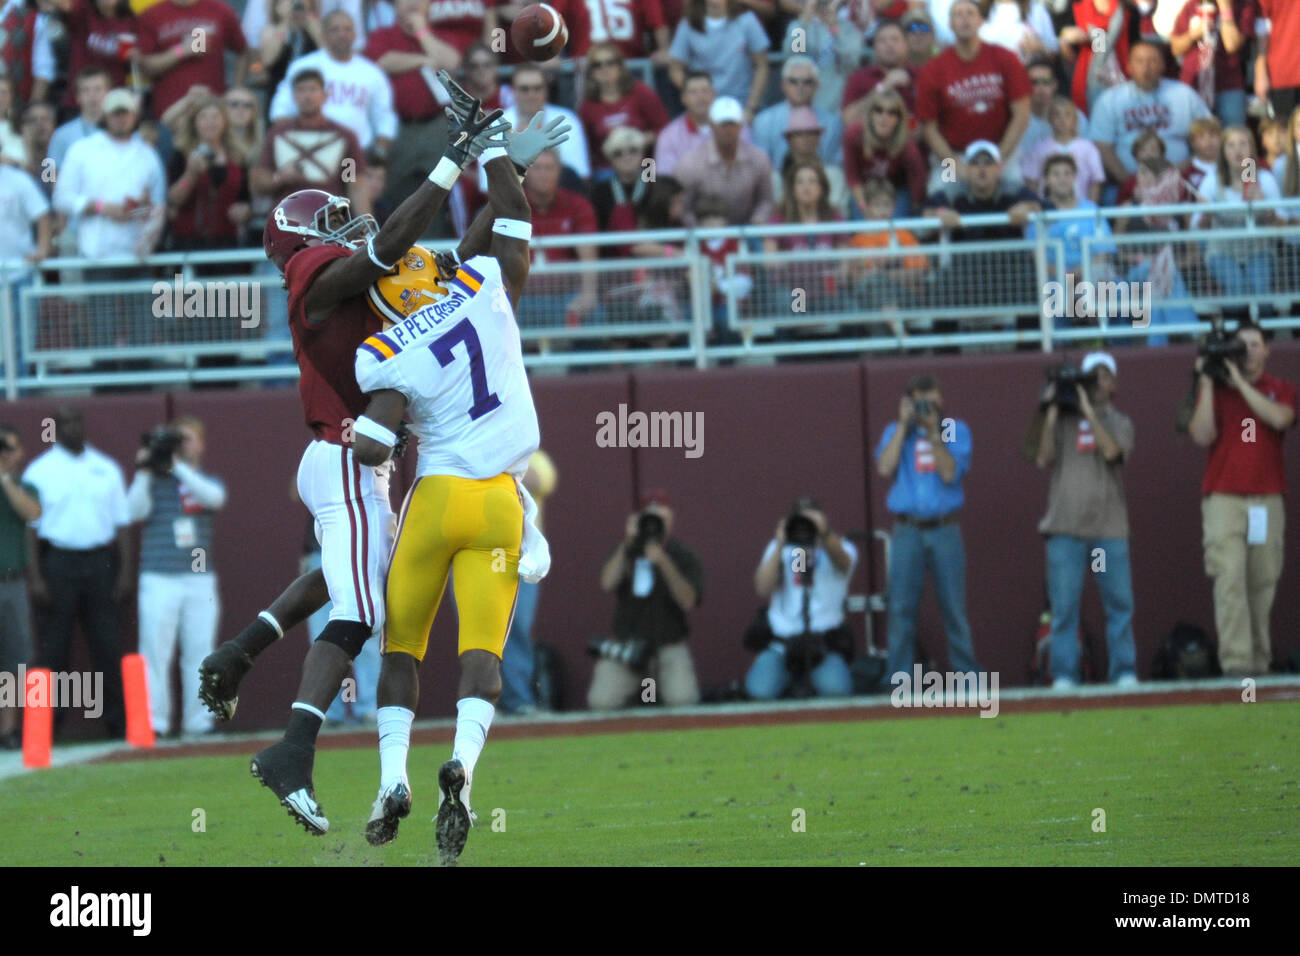 7 Patrick Peterson defends a pass to 8 Julio Jones during the